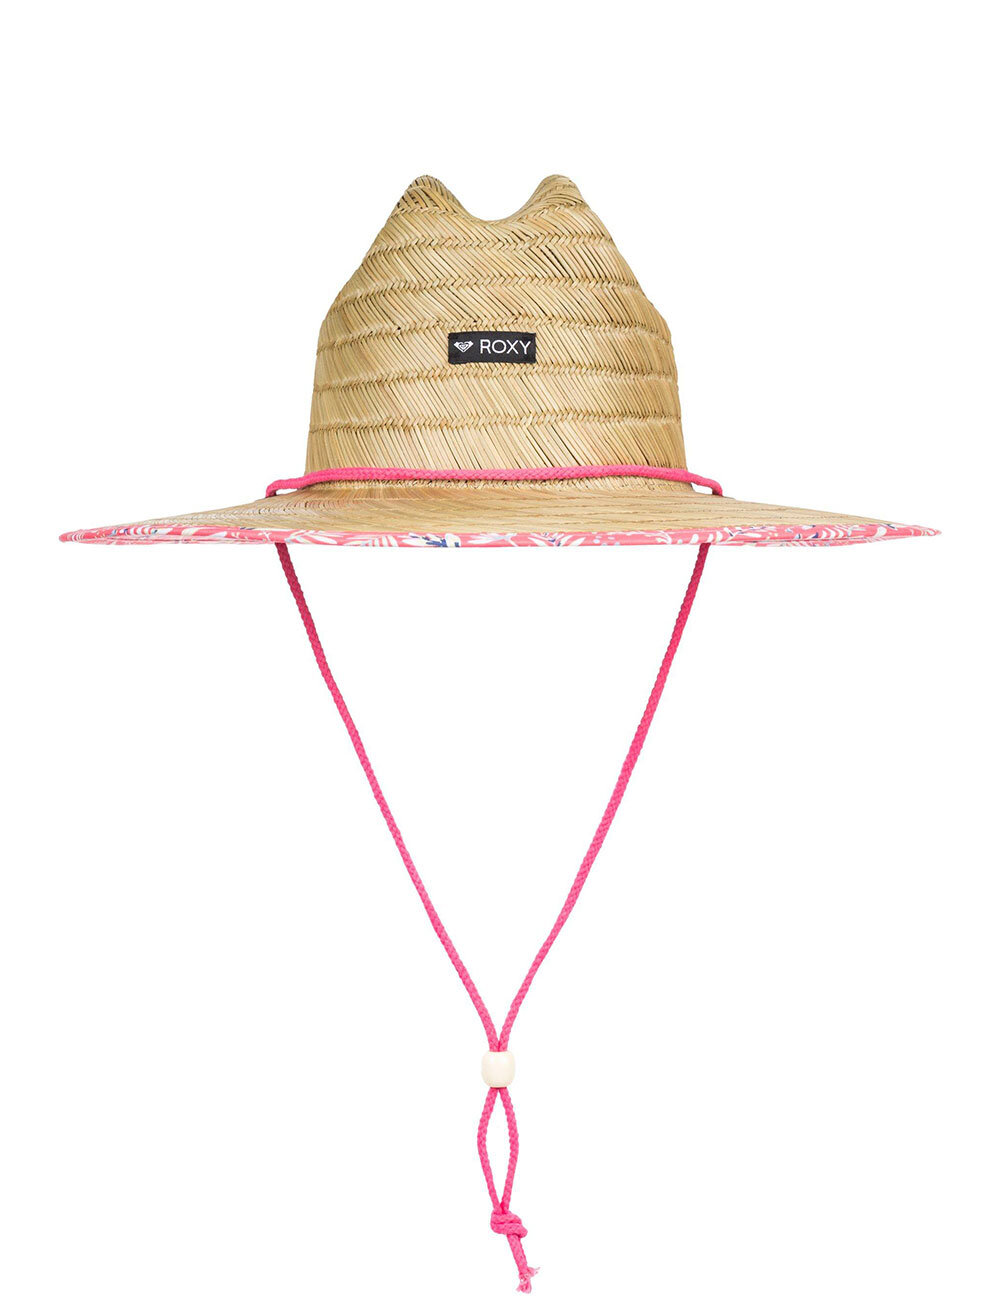 885b84986f9125 GIRLS TOMBOY PRINTED STRAW HAT - Girl's Clothing | Surf Clothing &  Streetwear | Children & Toddlers - ROXY S18